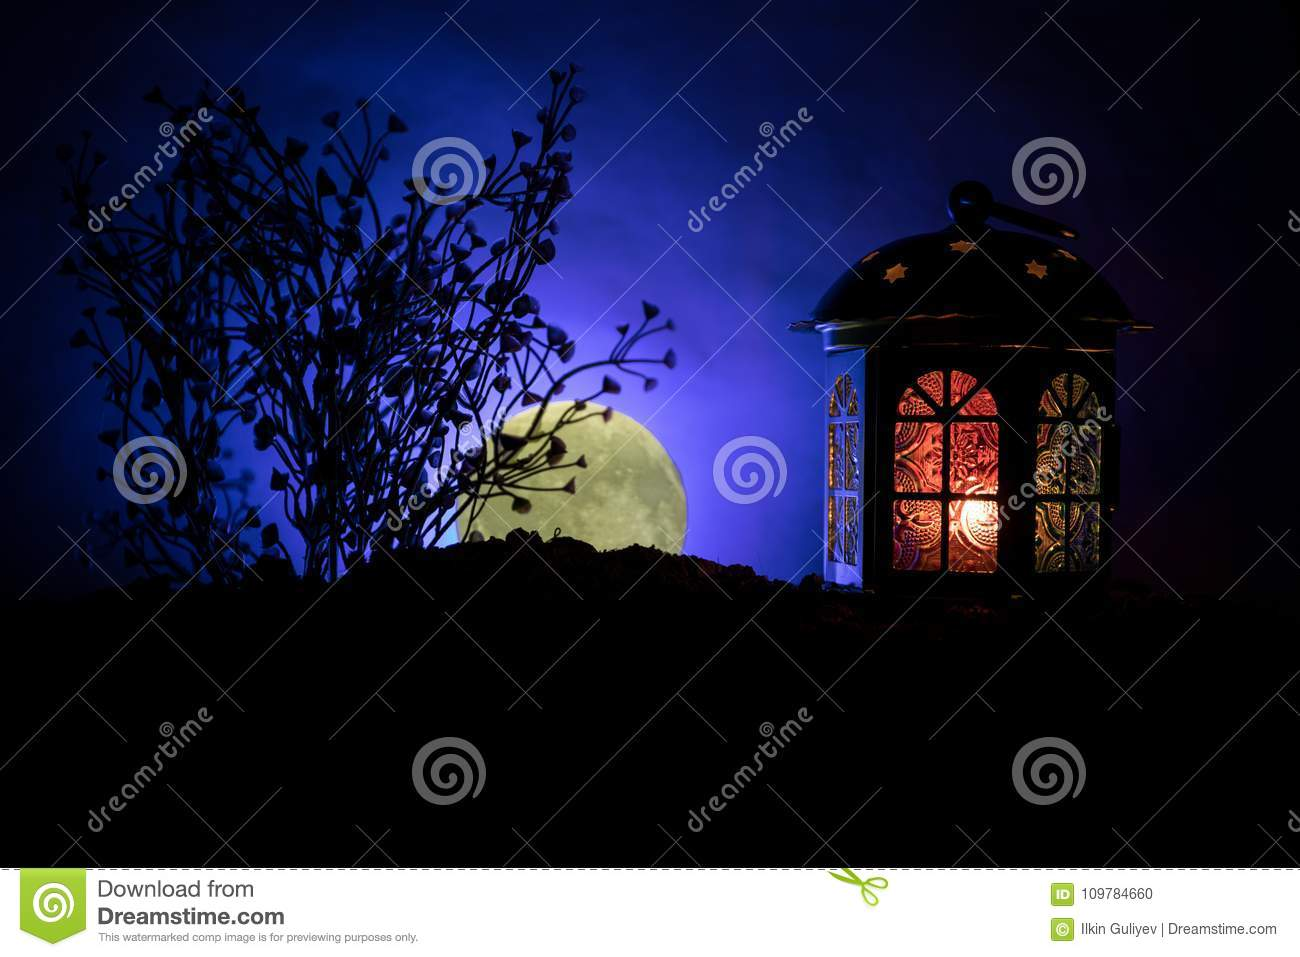 Valentine`s day decor concept. Romantic scene. Big Lantern as lovers house with rising moon on night decor background. Selective f